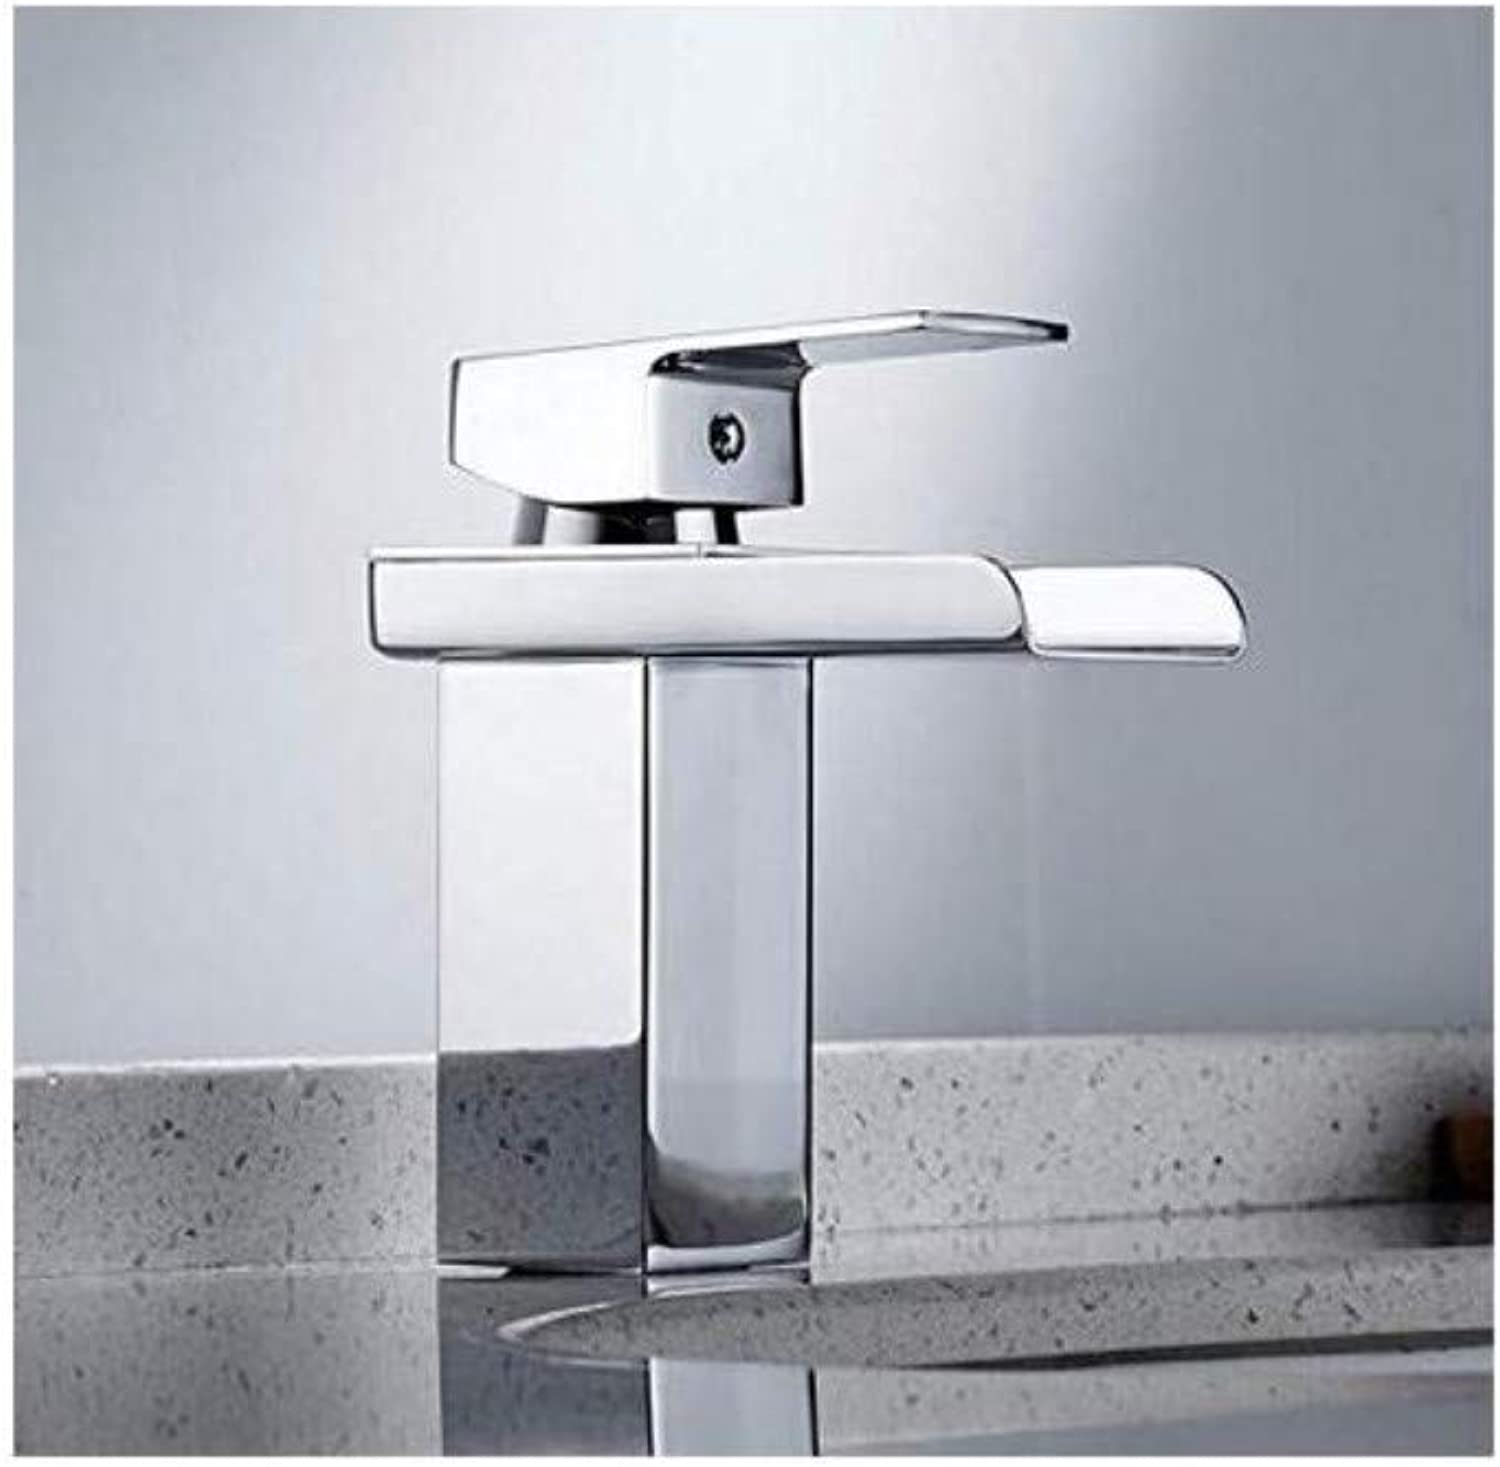 Retro Faucet Steel Aterfall Bathroom Chrome Sink Hot Cold Mixers Taps Deck Mounted Single Hole Classic